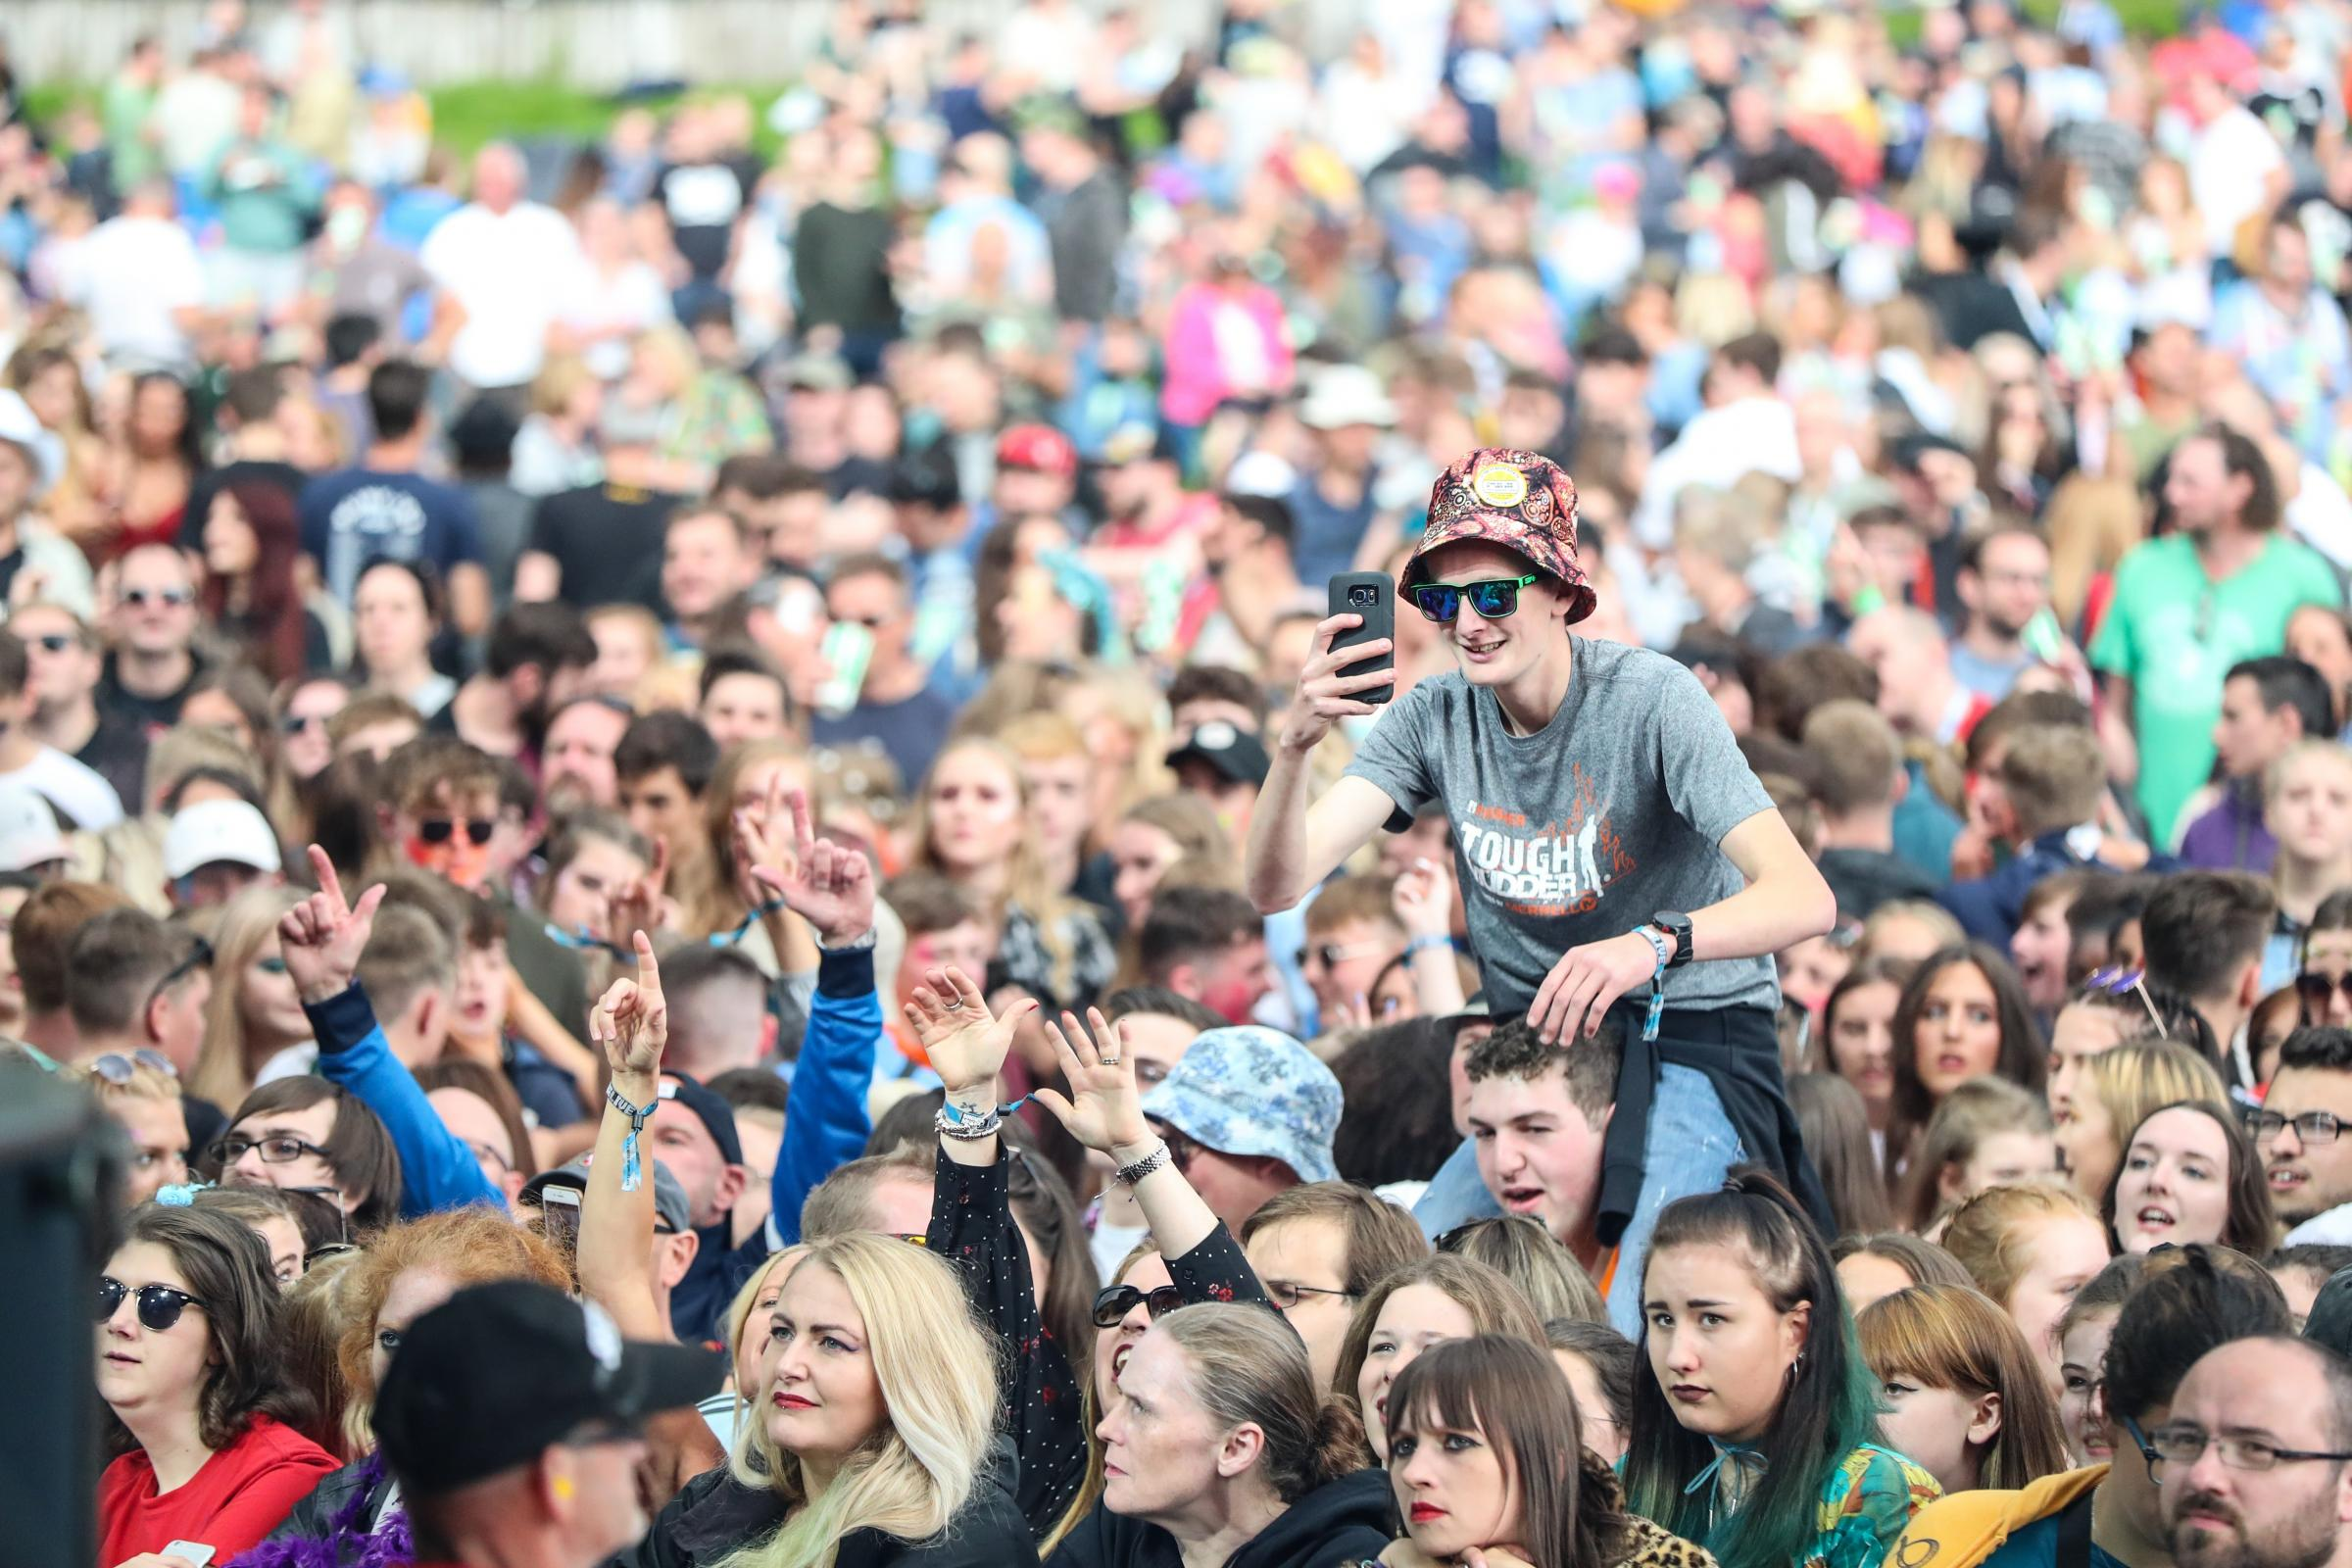 The Crowd watch Twin Atlantic perform at this year's Bingley Music Live.